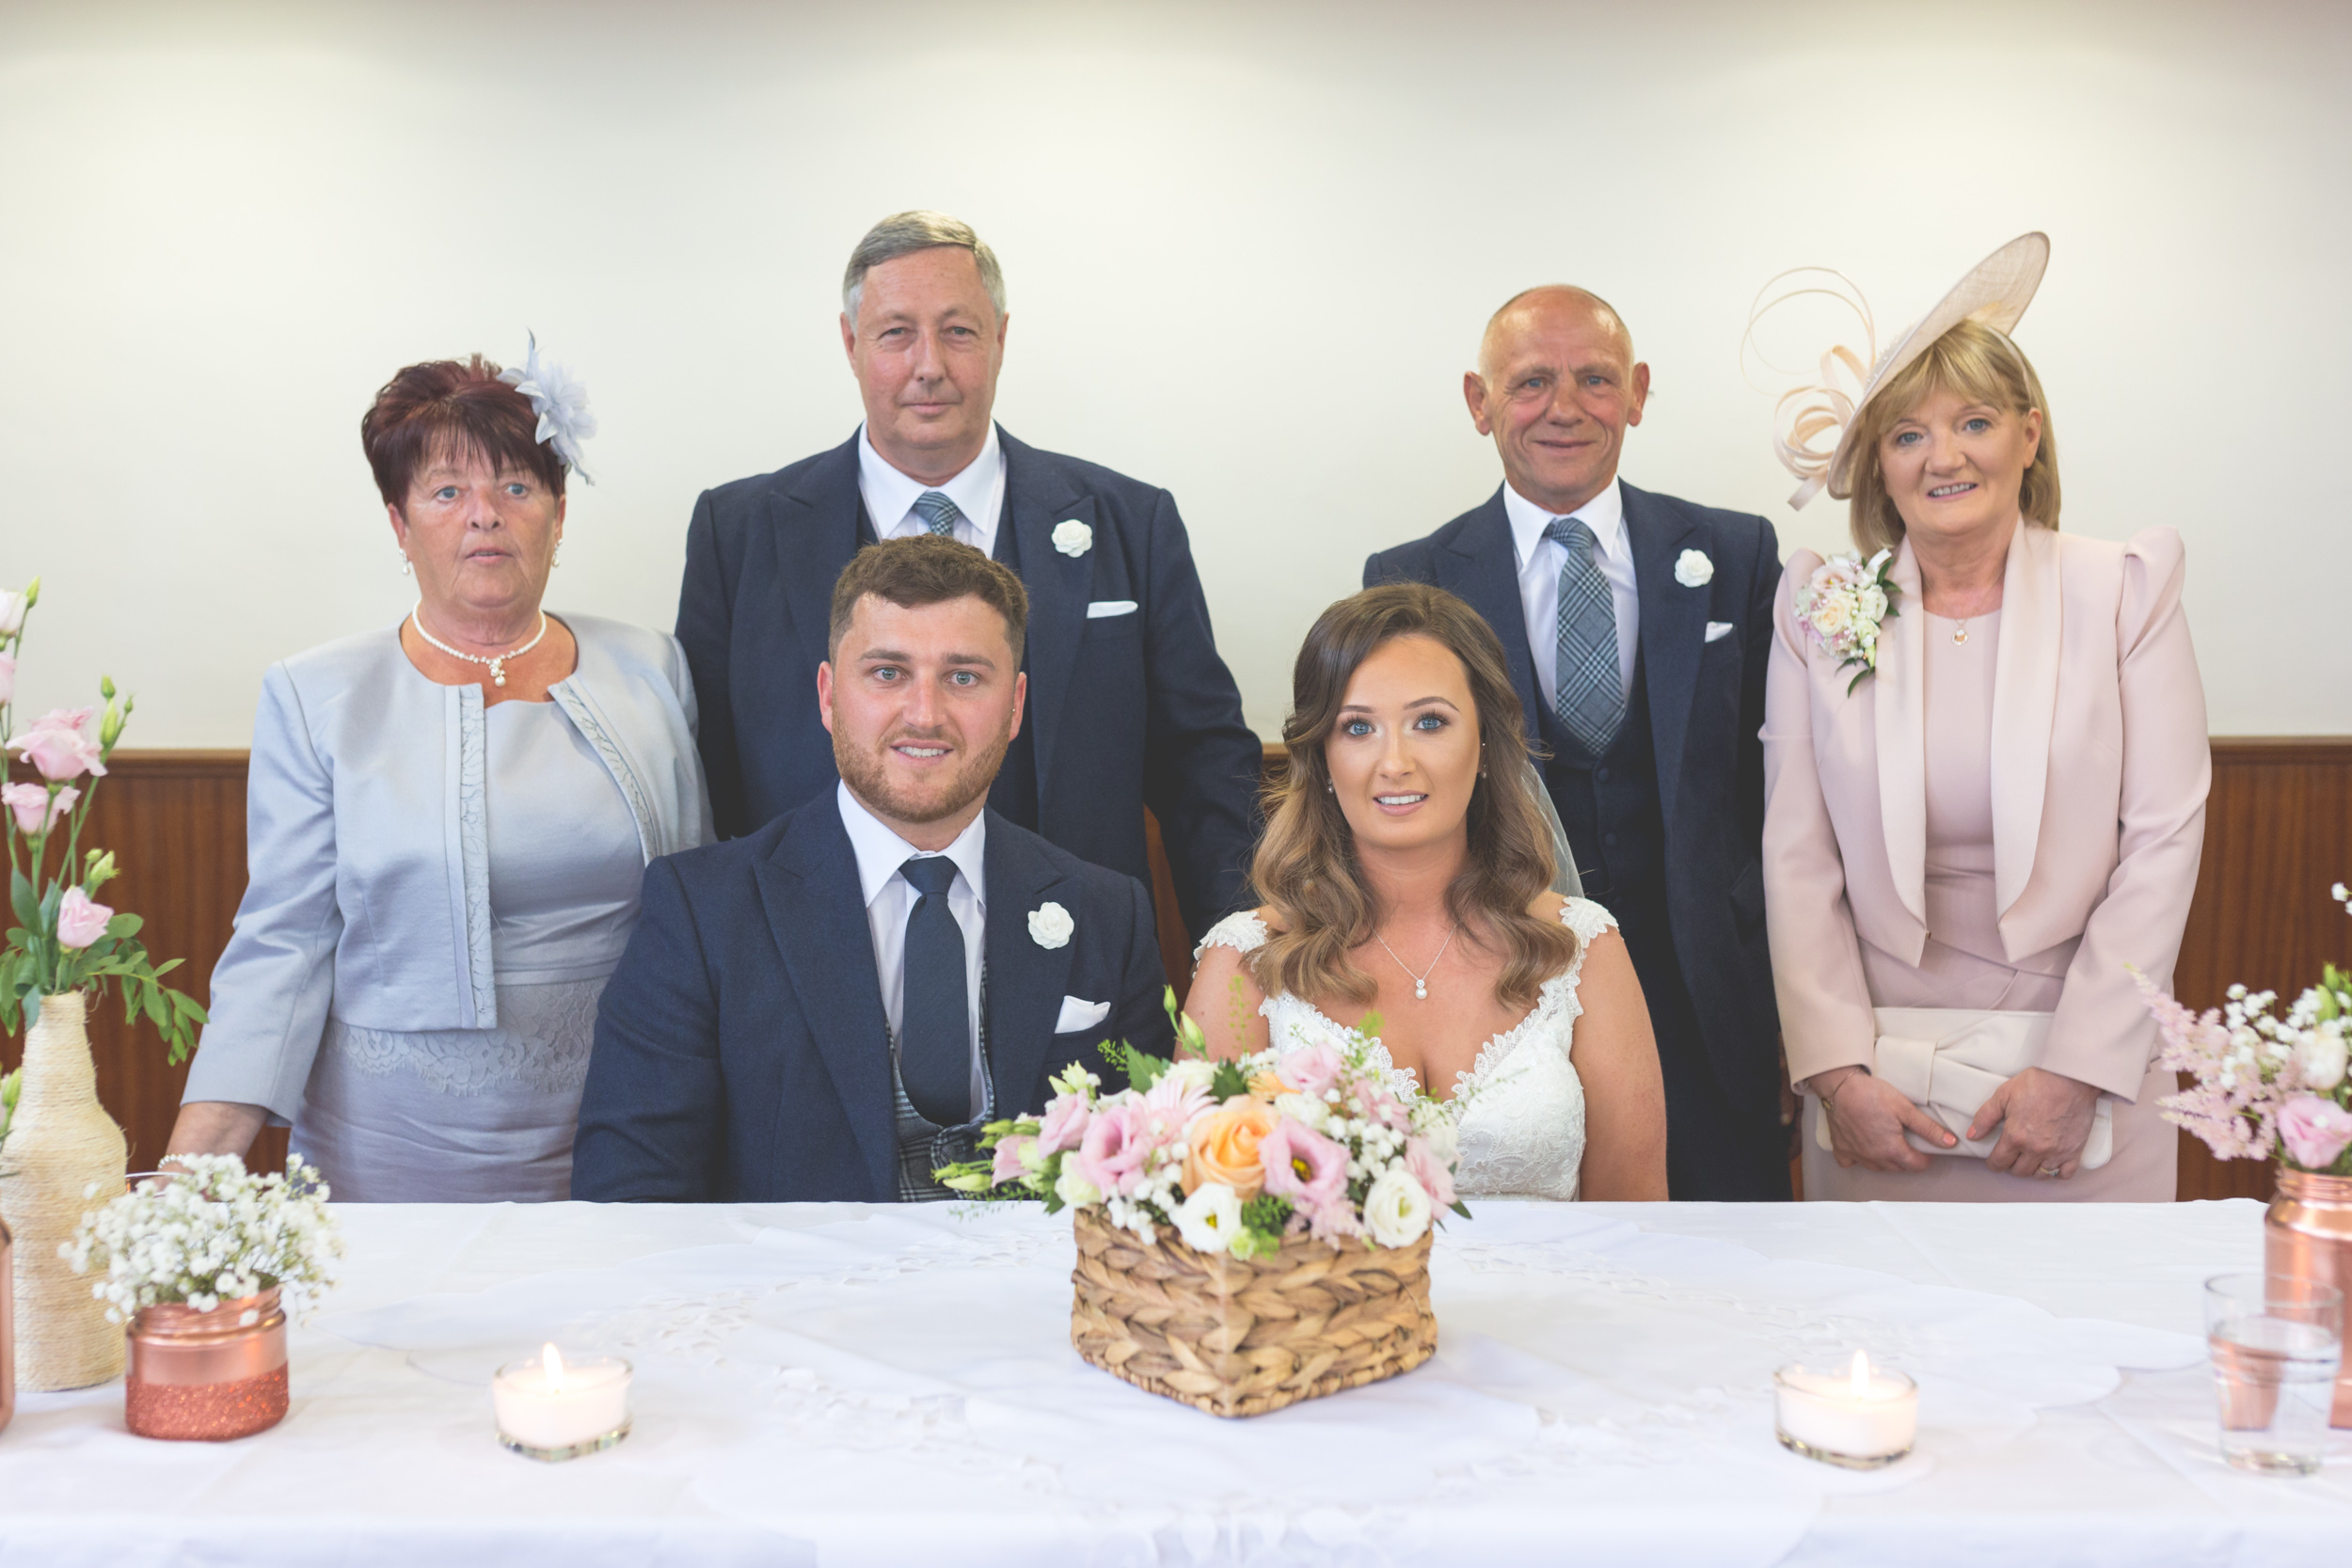 Brian McEwan | Northern Ireland Wedding Photographer | Rebecca & Michael | Ceremony-91.jpg